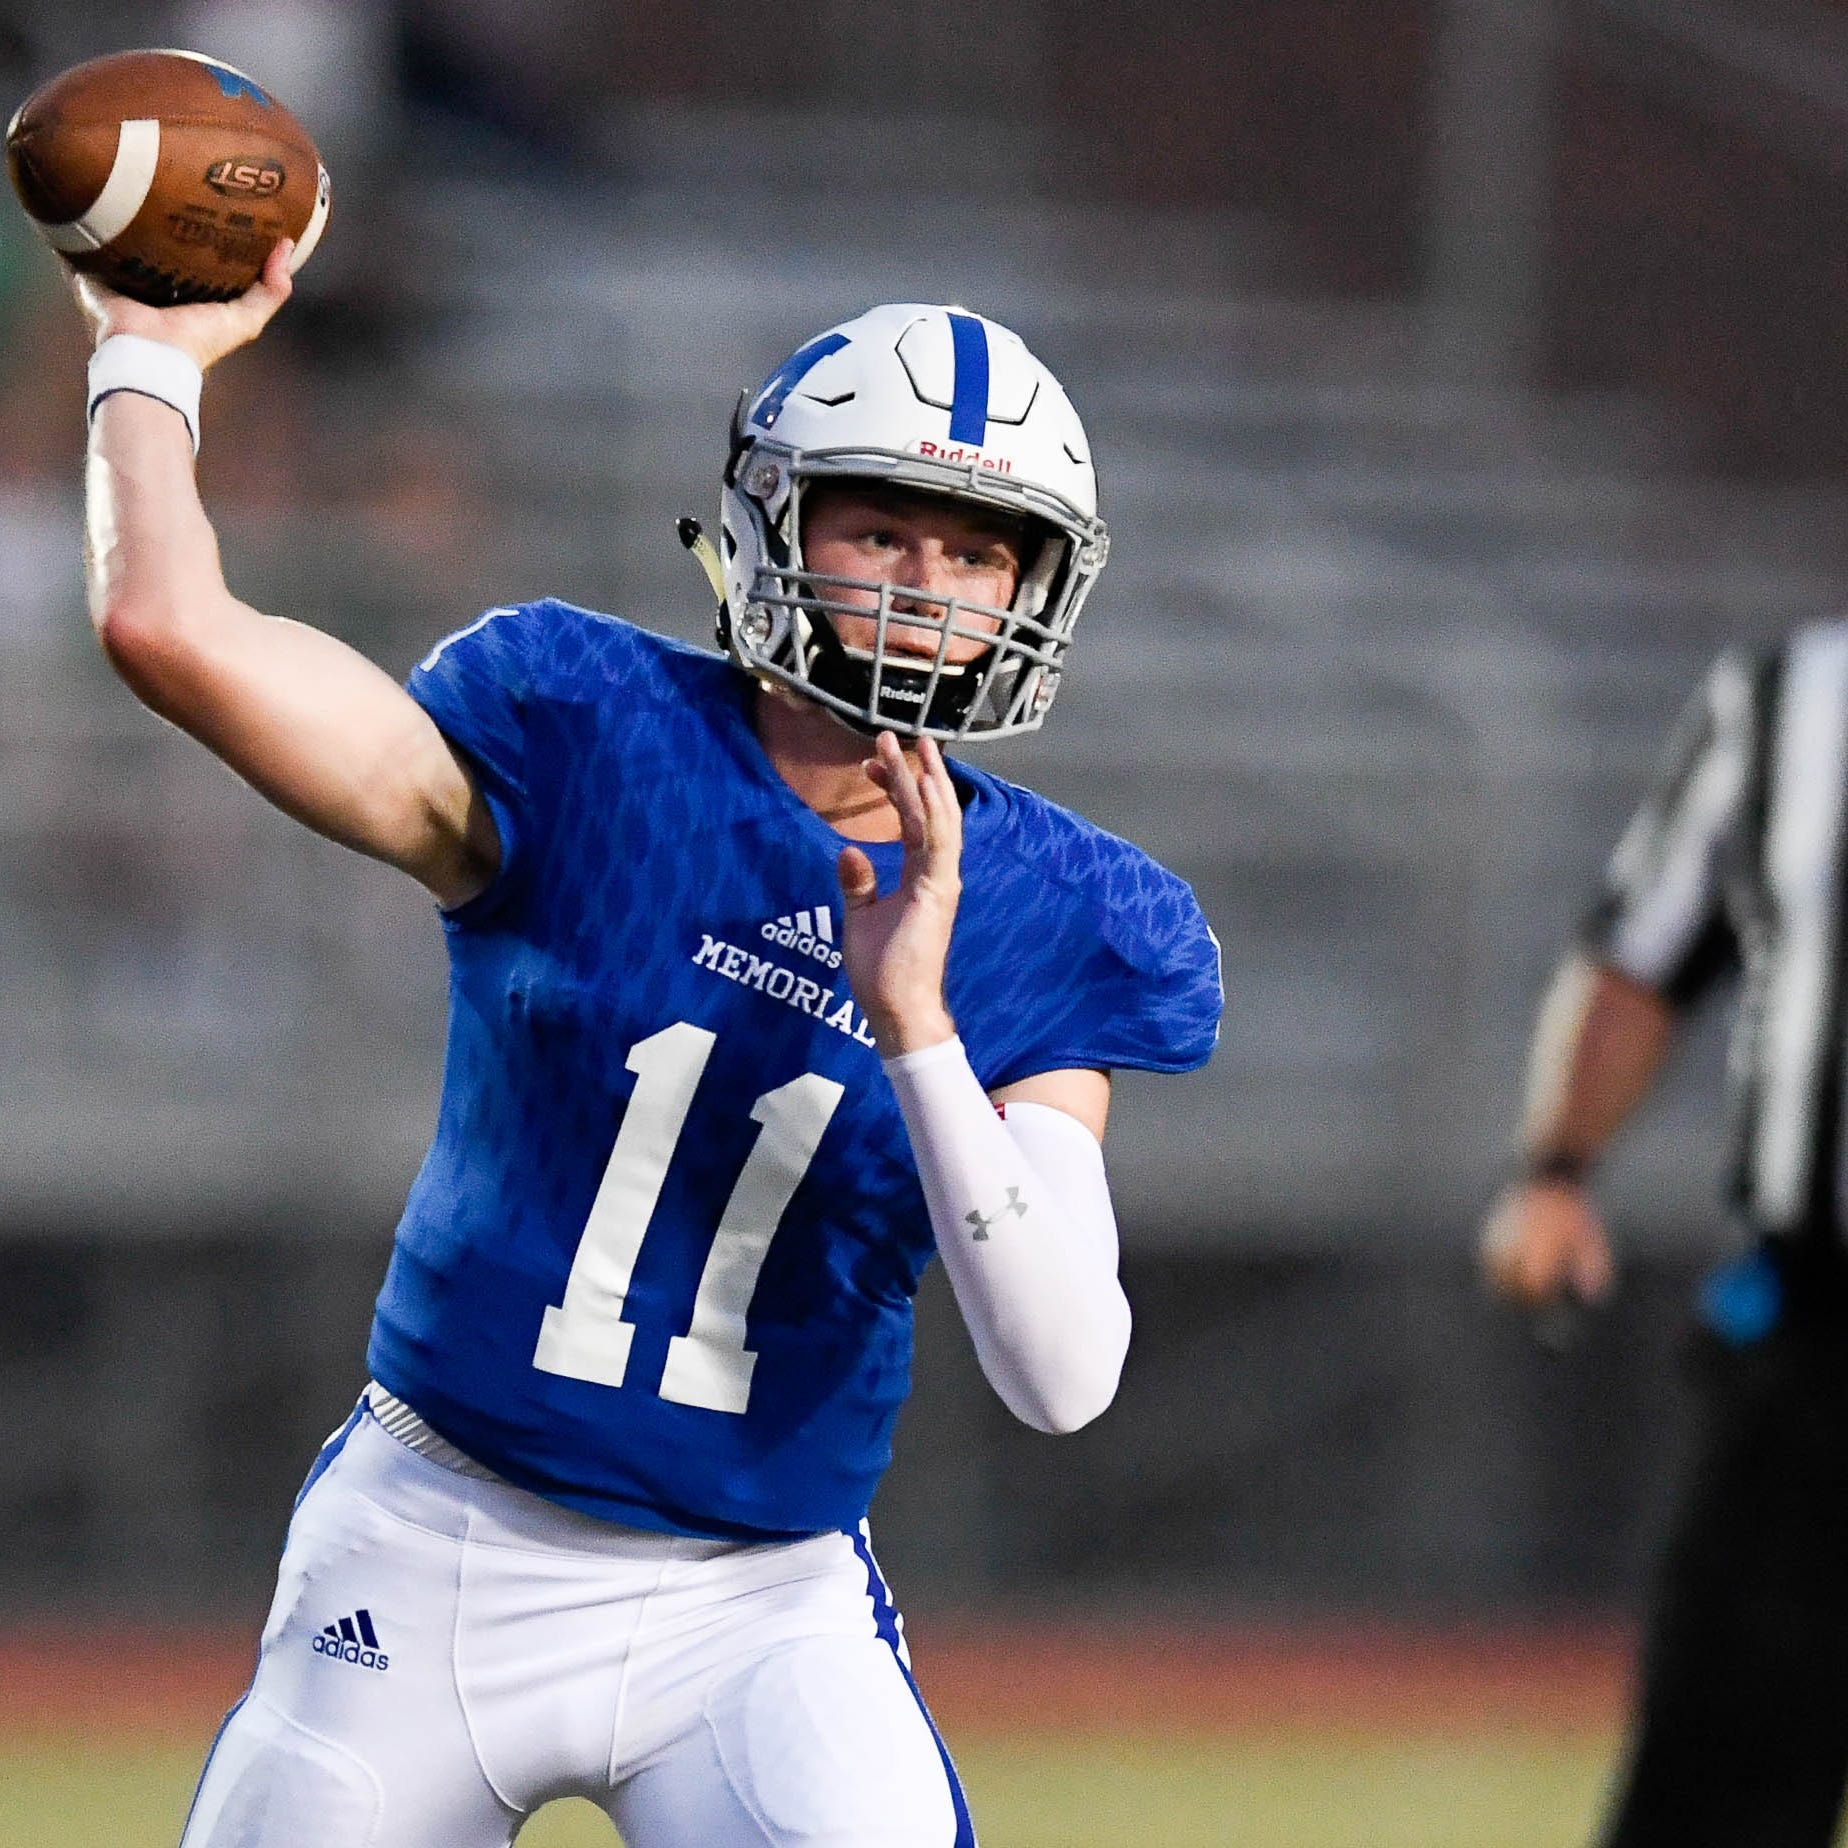 Memorial quarterback Michael Lindauer commits to University of Cincinnati